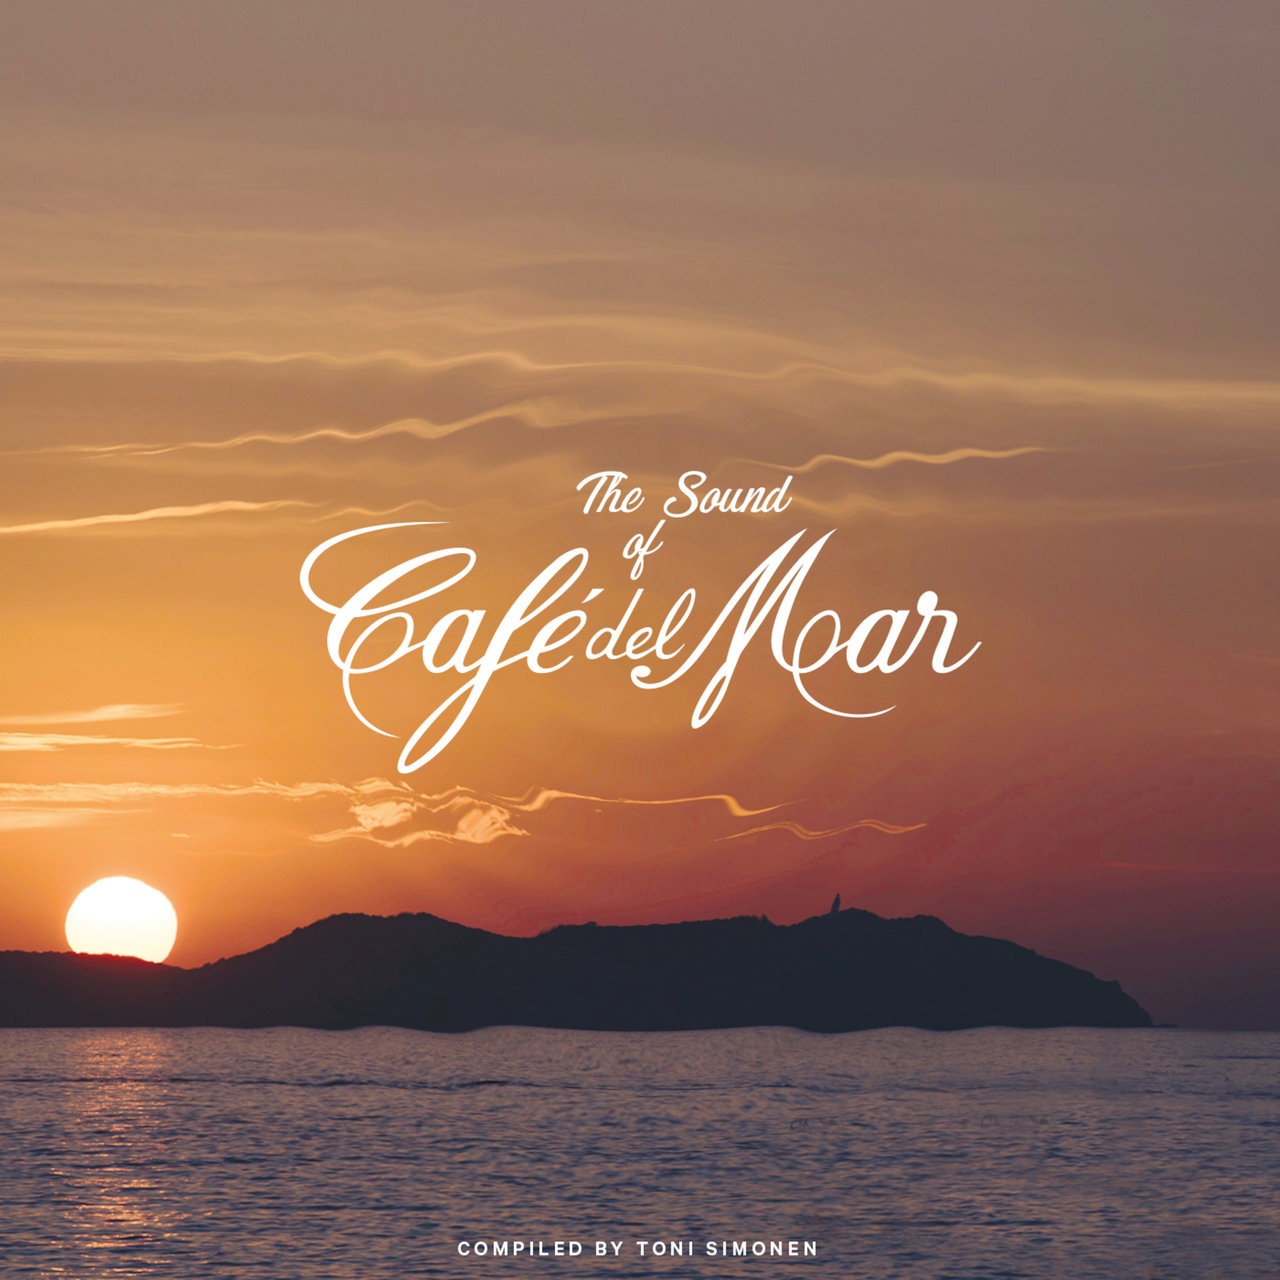 The Sound of Café del Mar